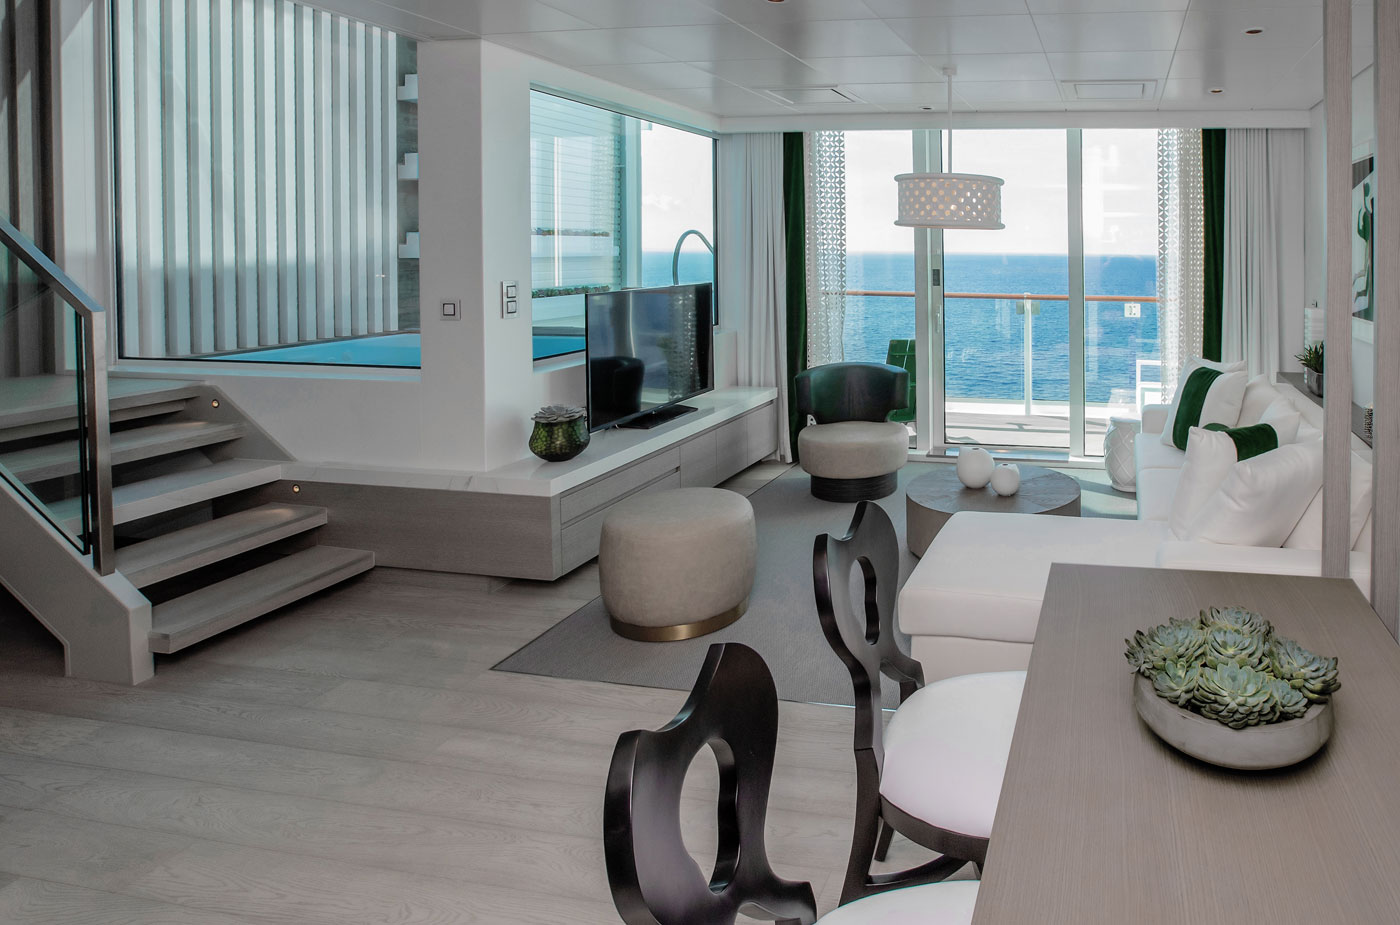 cruise-ship-celebrity-cruise-interior-decor-luxury-design1